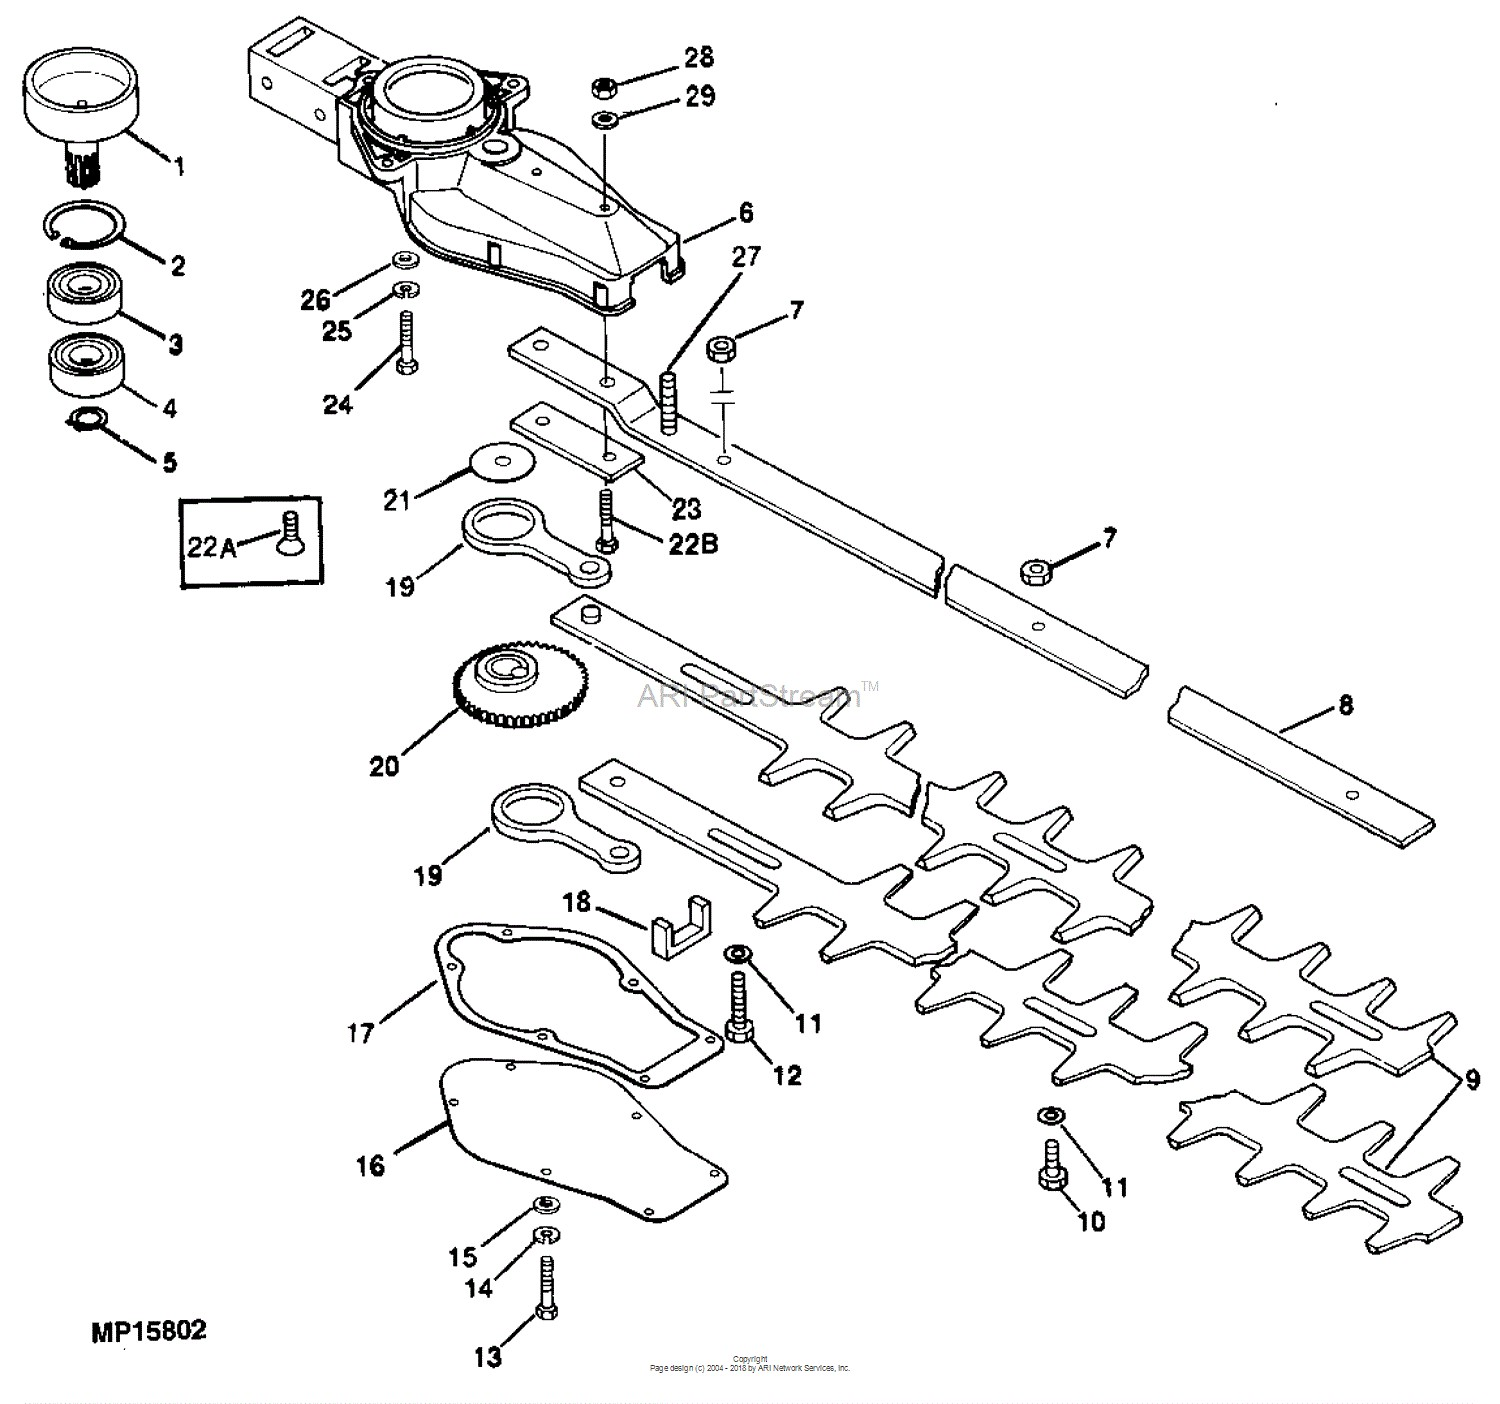 Flywheel Clutch Diagram John Deere Parts Diagrams John Deere 162 Hedge Trimmer Pc2119 Of Flywheel Clutch Diagram New ford Ranger Clutch